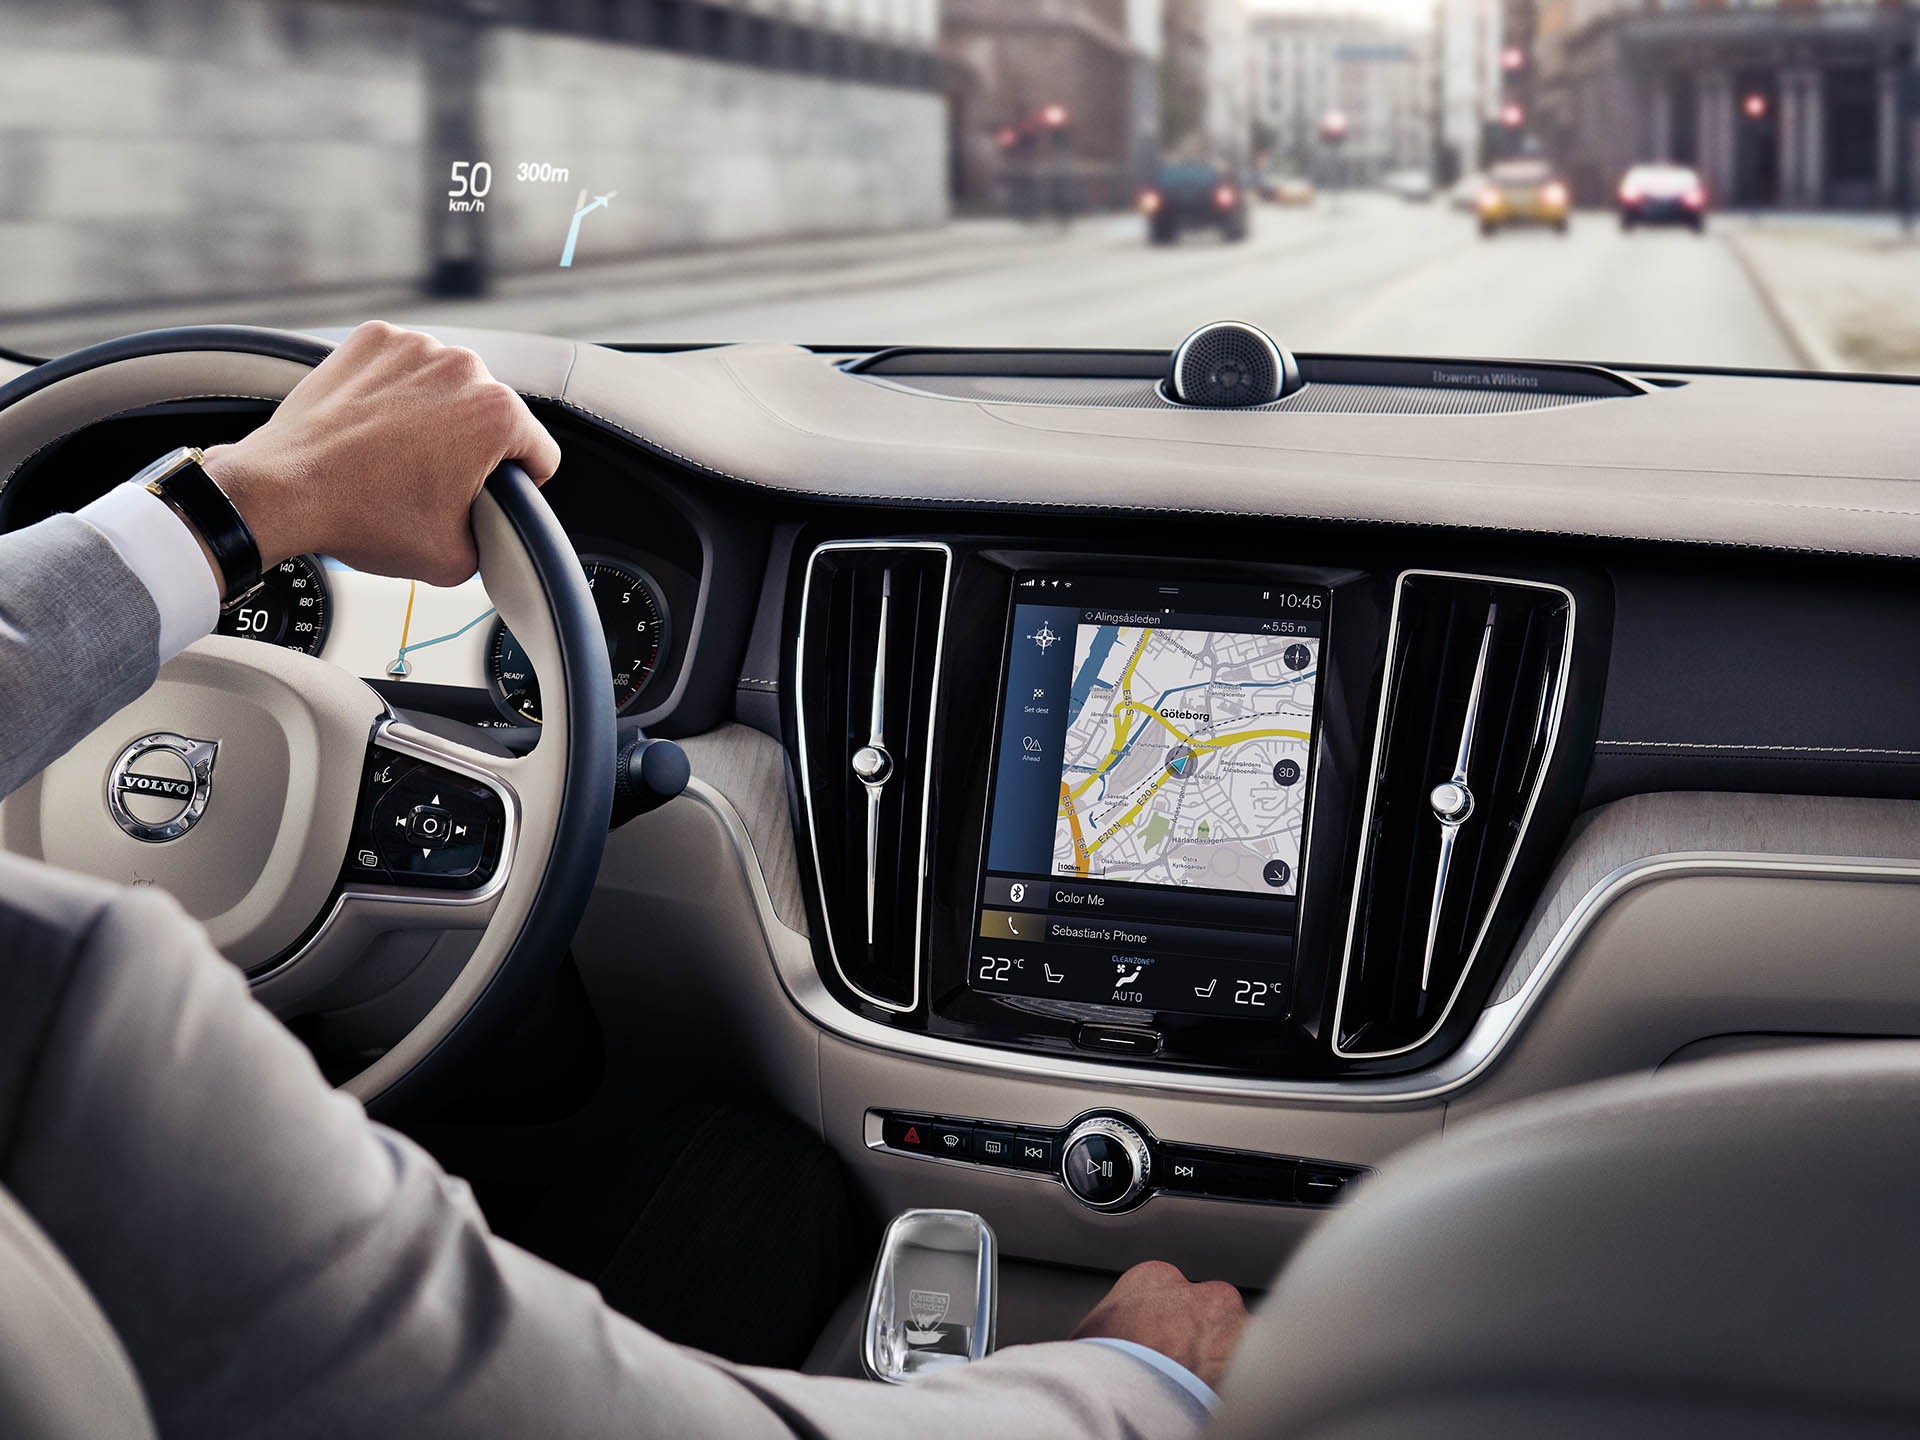 Inside a Volvo Sedan, a man driving on the road with help of navigation system